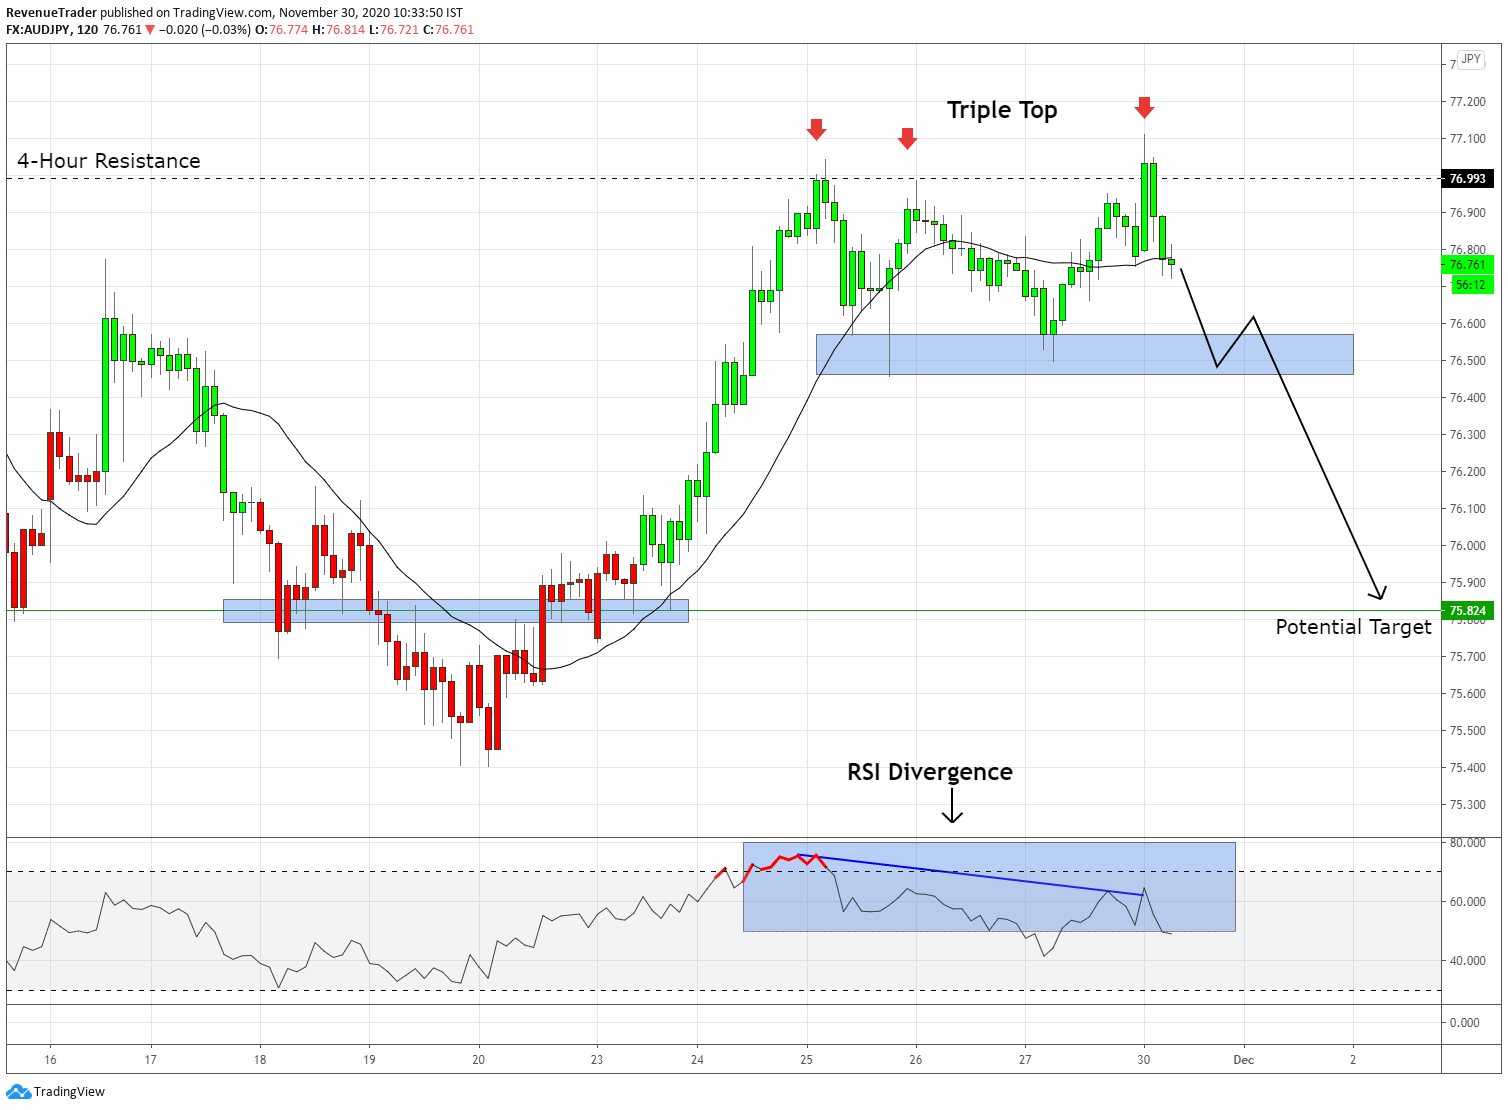 Triple top pattern at the 4 hour resistance level on AUDJPY